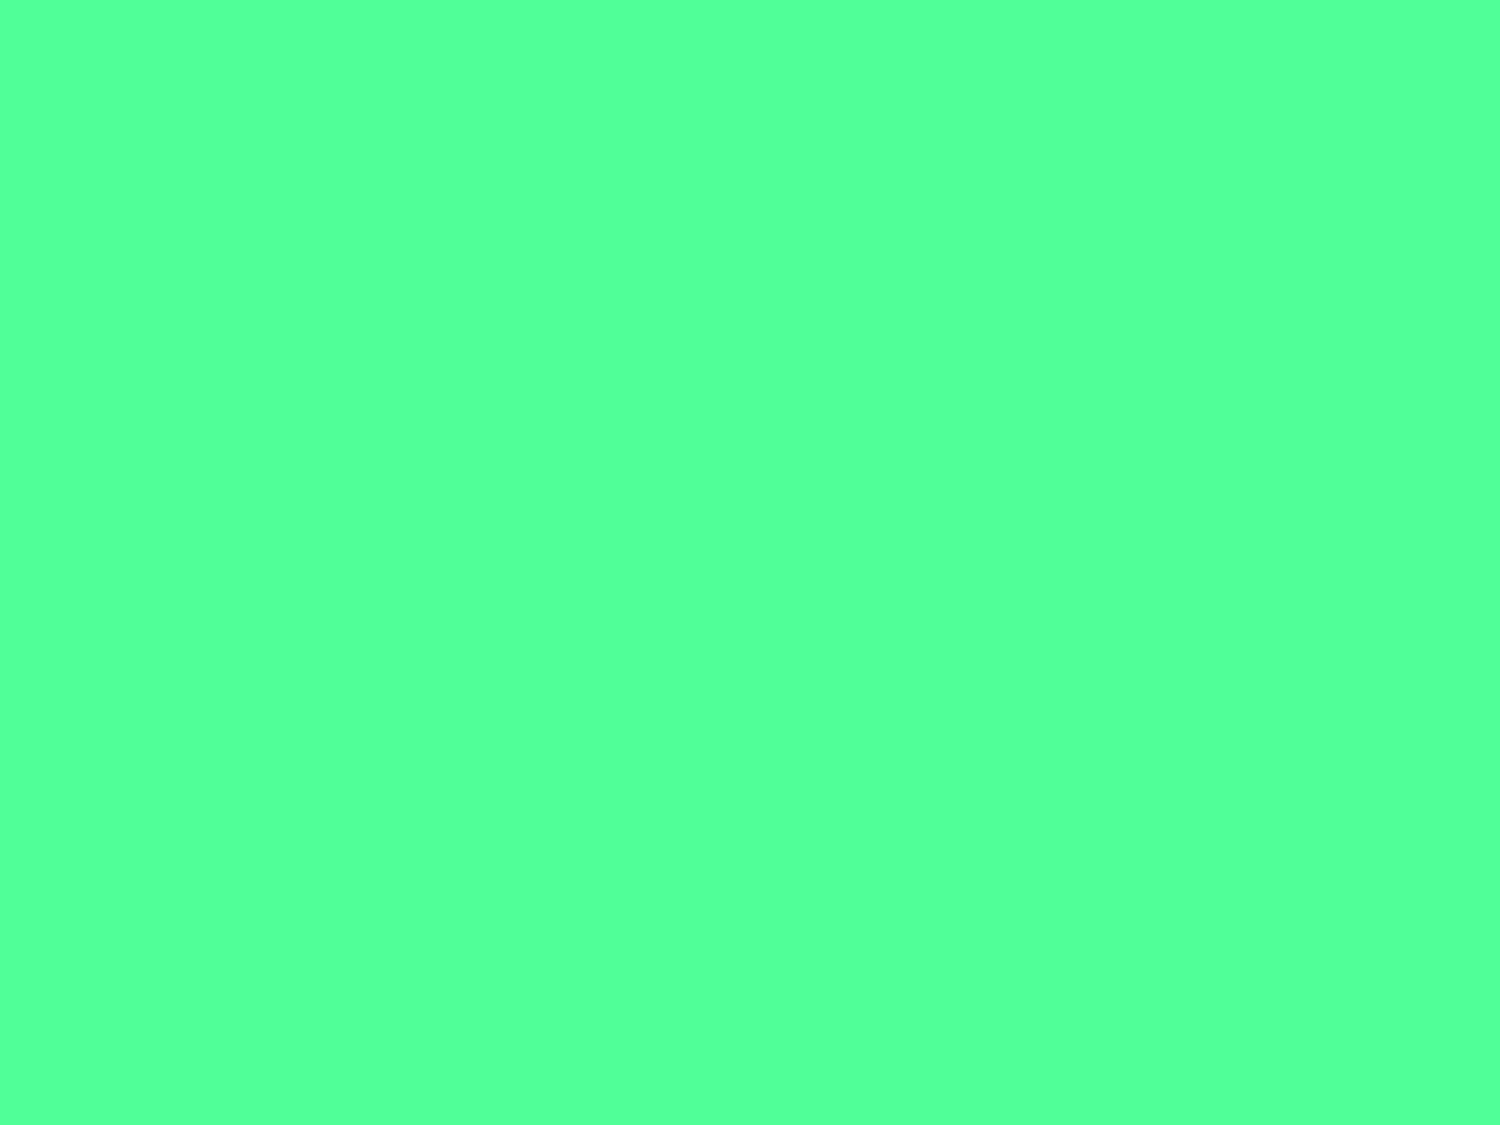 solid bright green background - photo #29